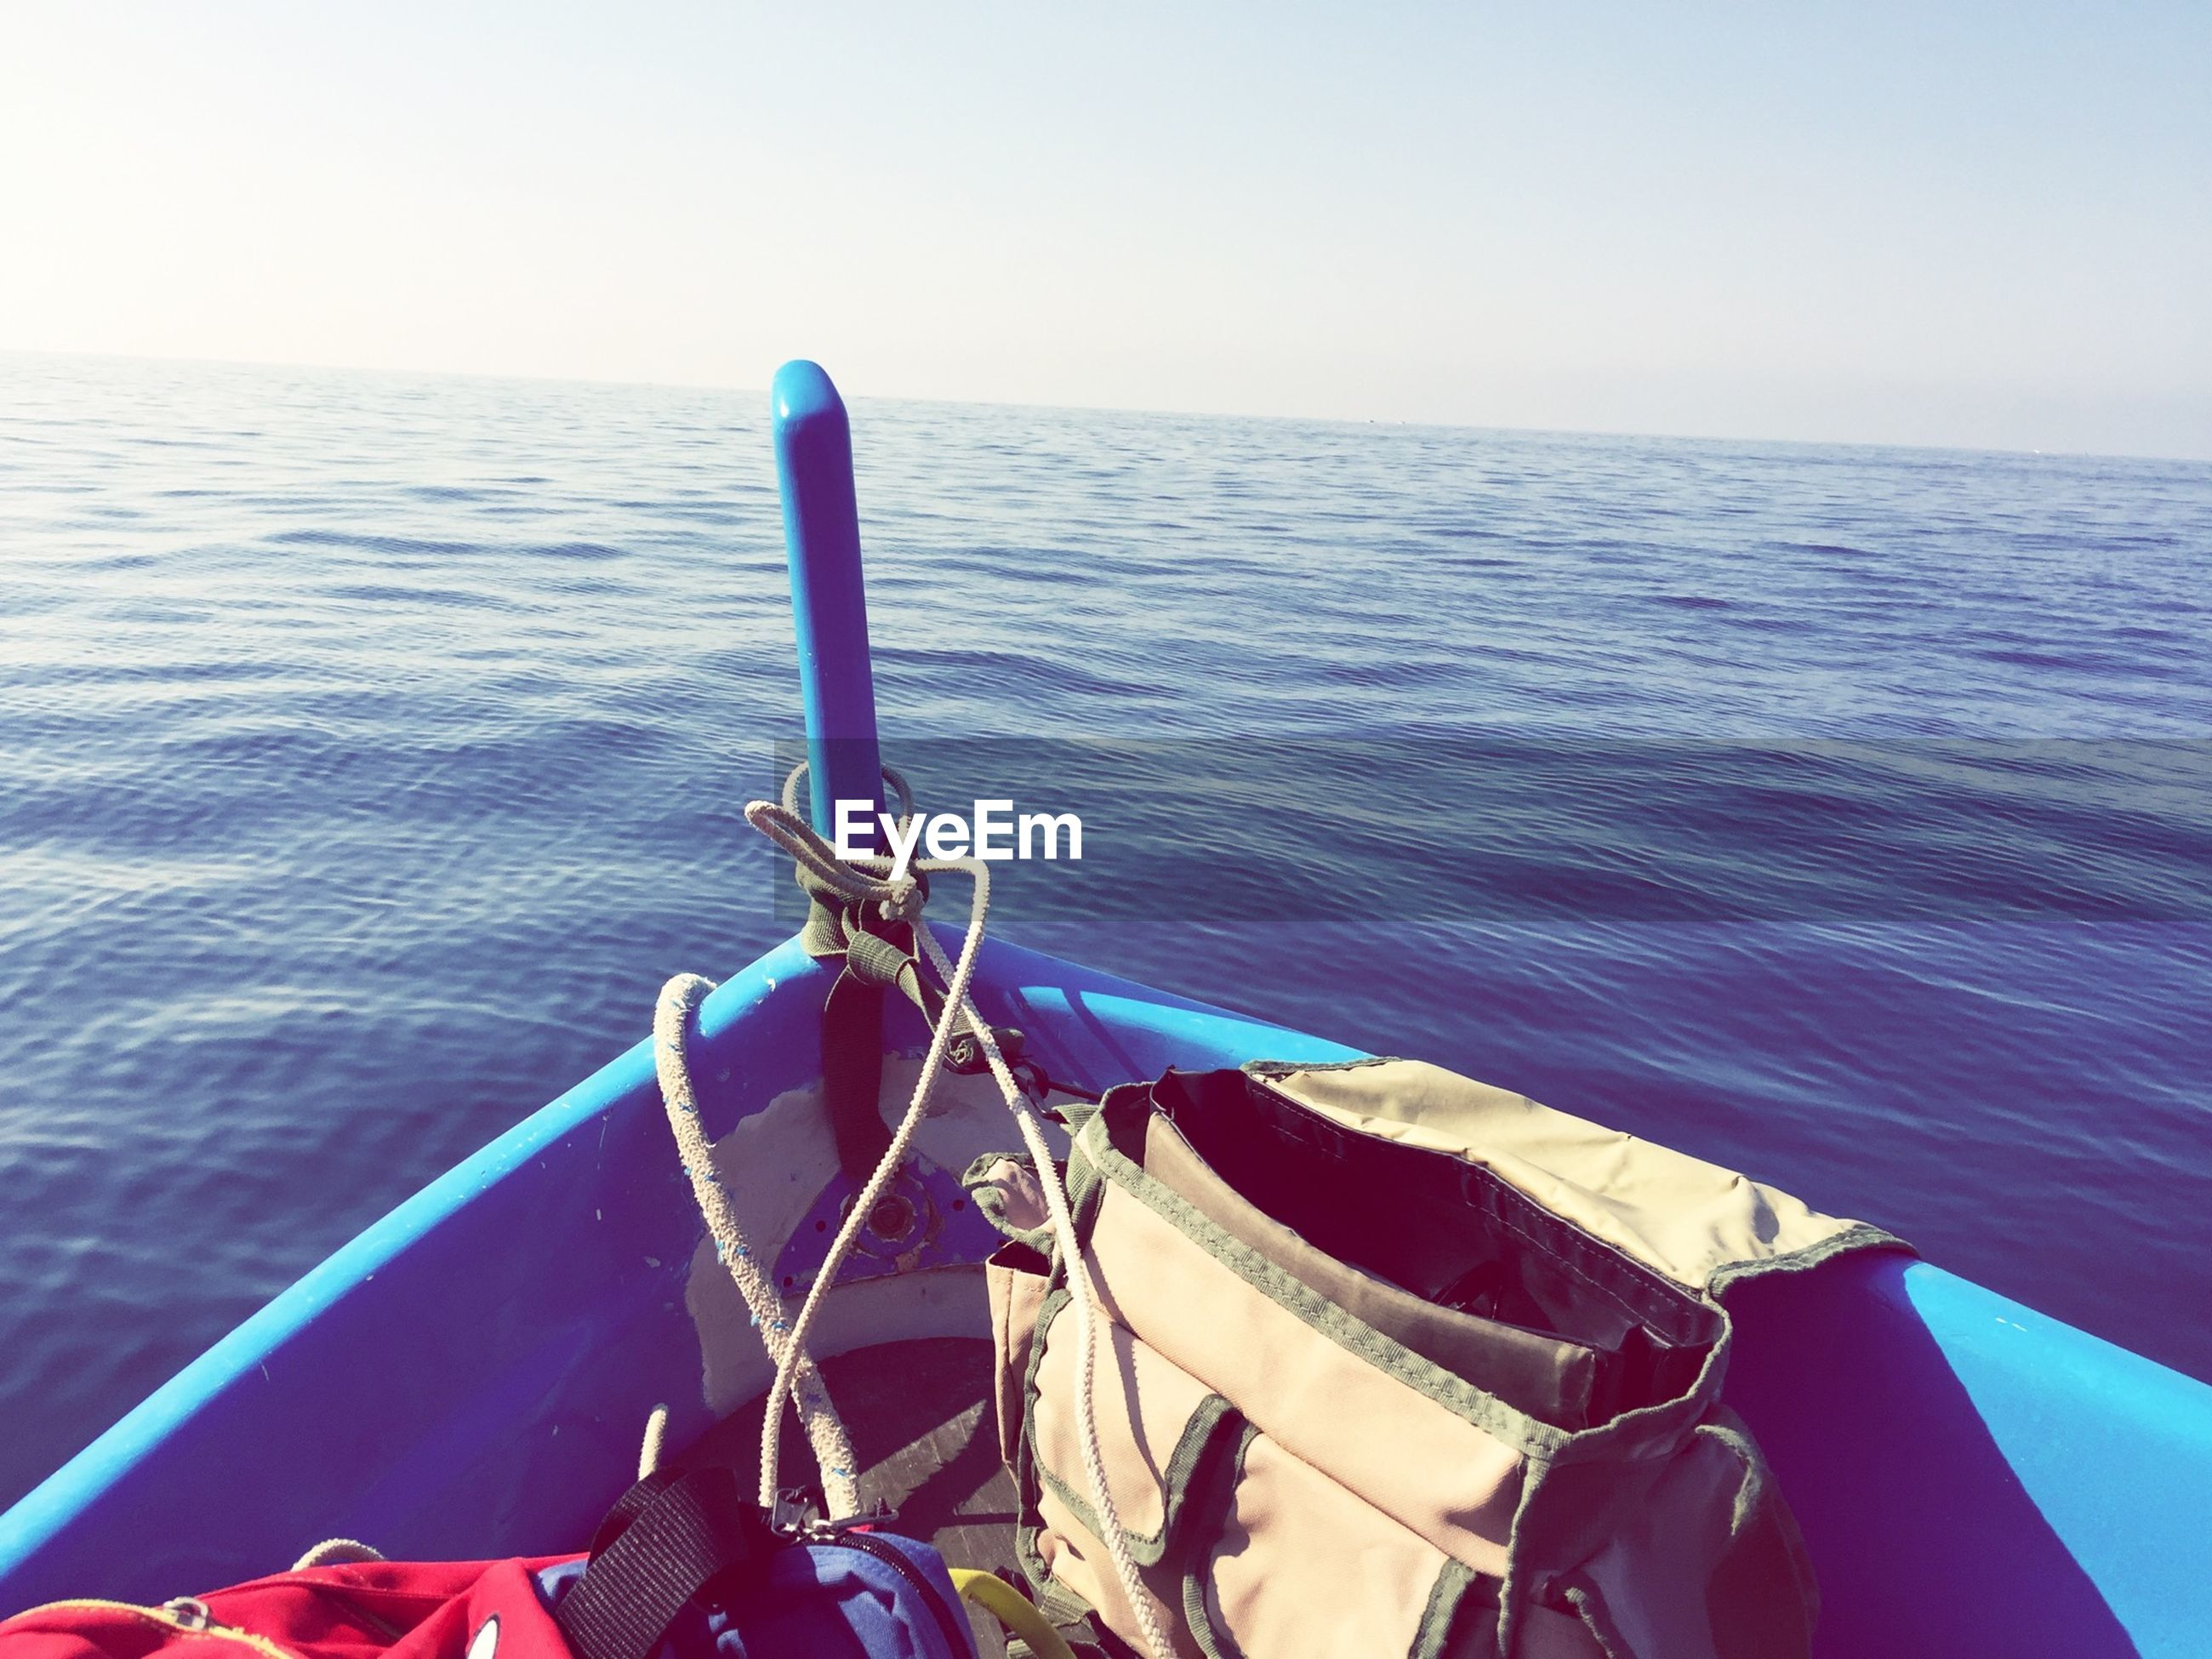 water, sea, nautical vessel, boat, horizon over water, transportation, mode of transport, tranquility, blue, moored, clear sky, tranquil scene, scenics, nature, beauty in nature, sky, rope, day, outdoors, travel